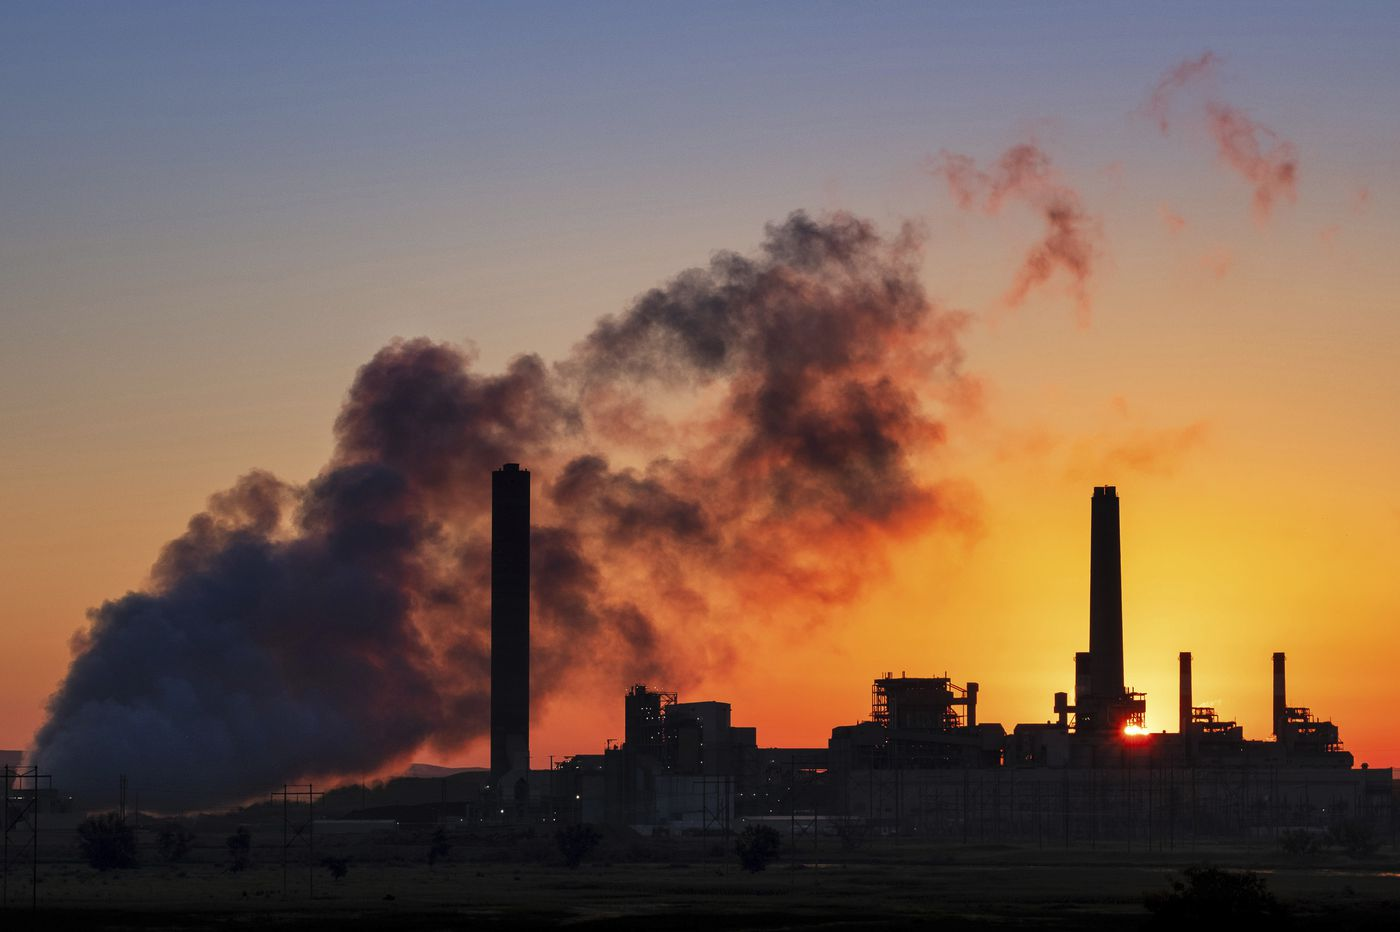 'Americans are waking up': two thirds say climate crisis must be addressed